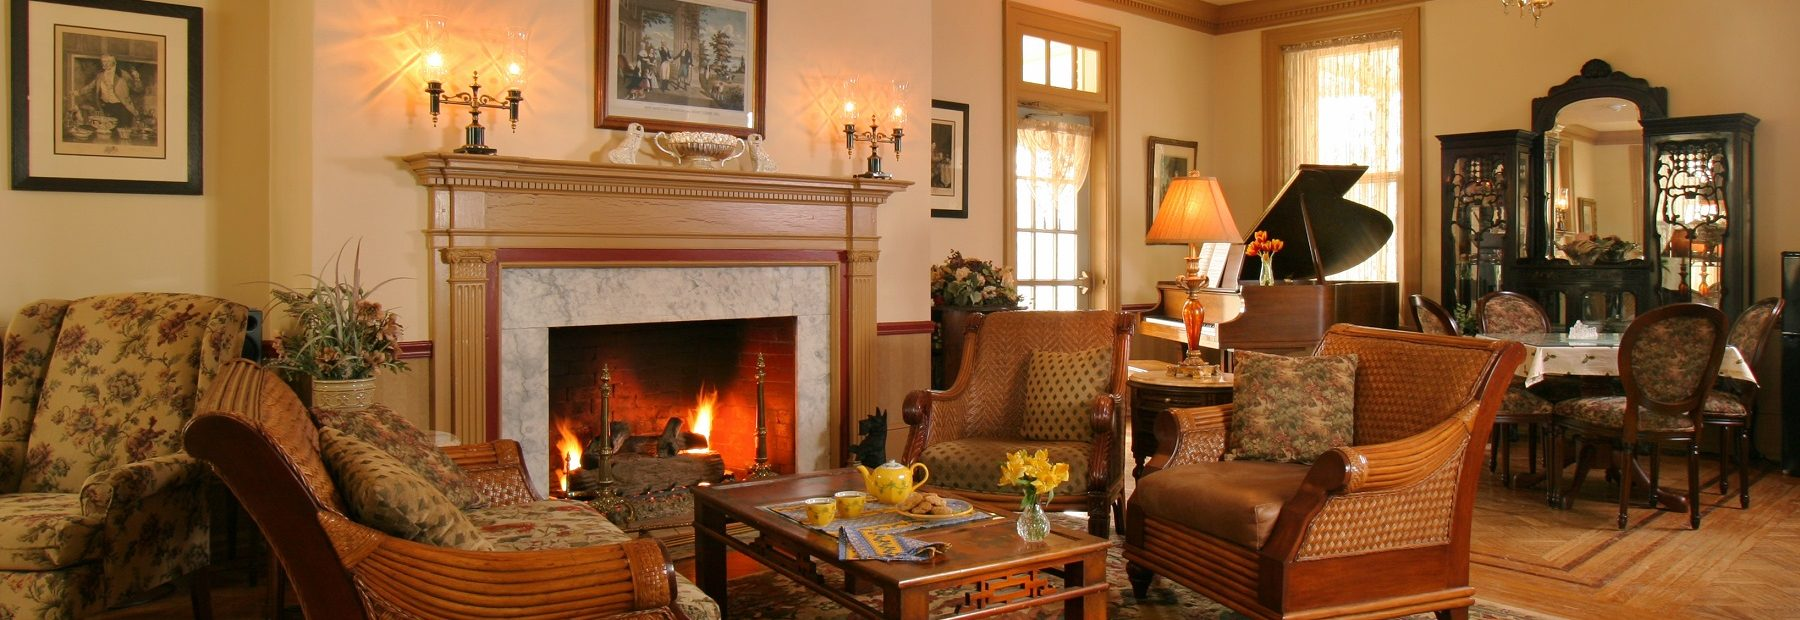 A living room filled with furniture and a fire place at Lafayette Inn.